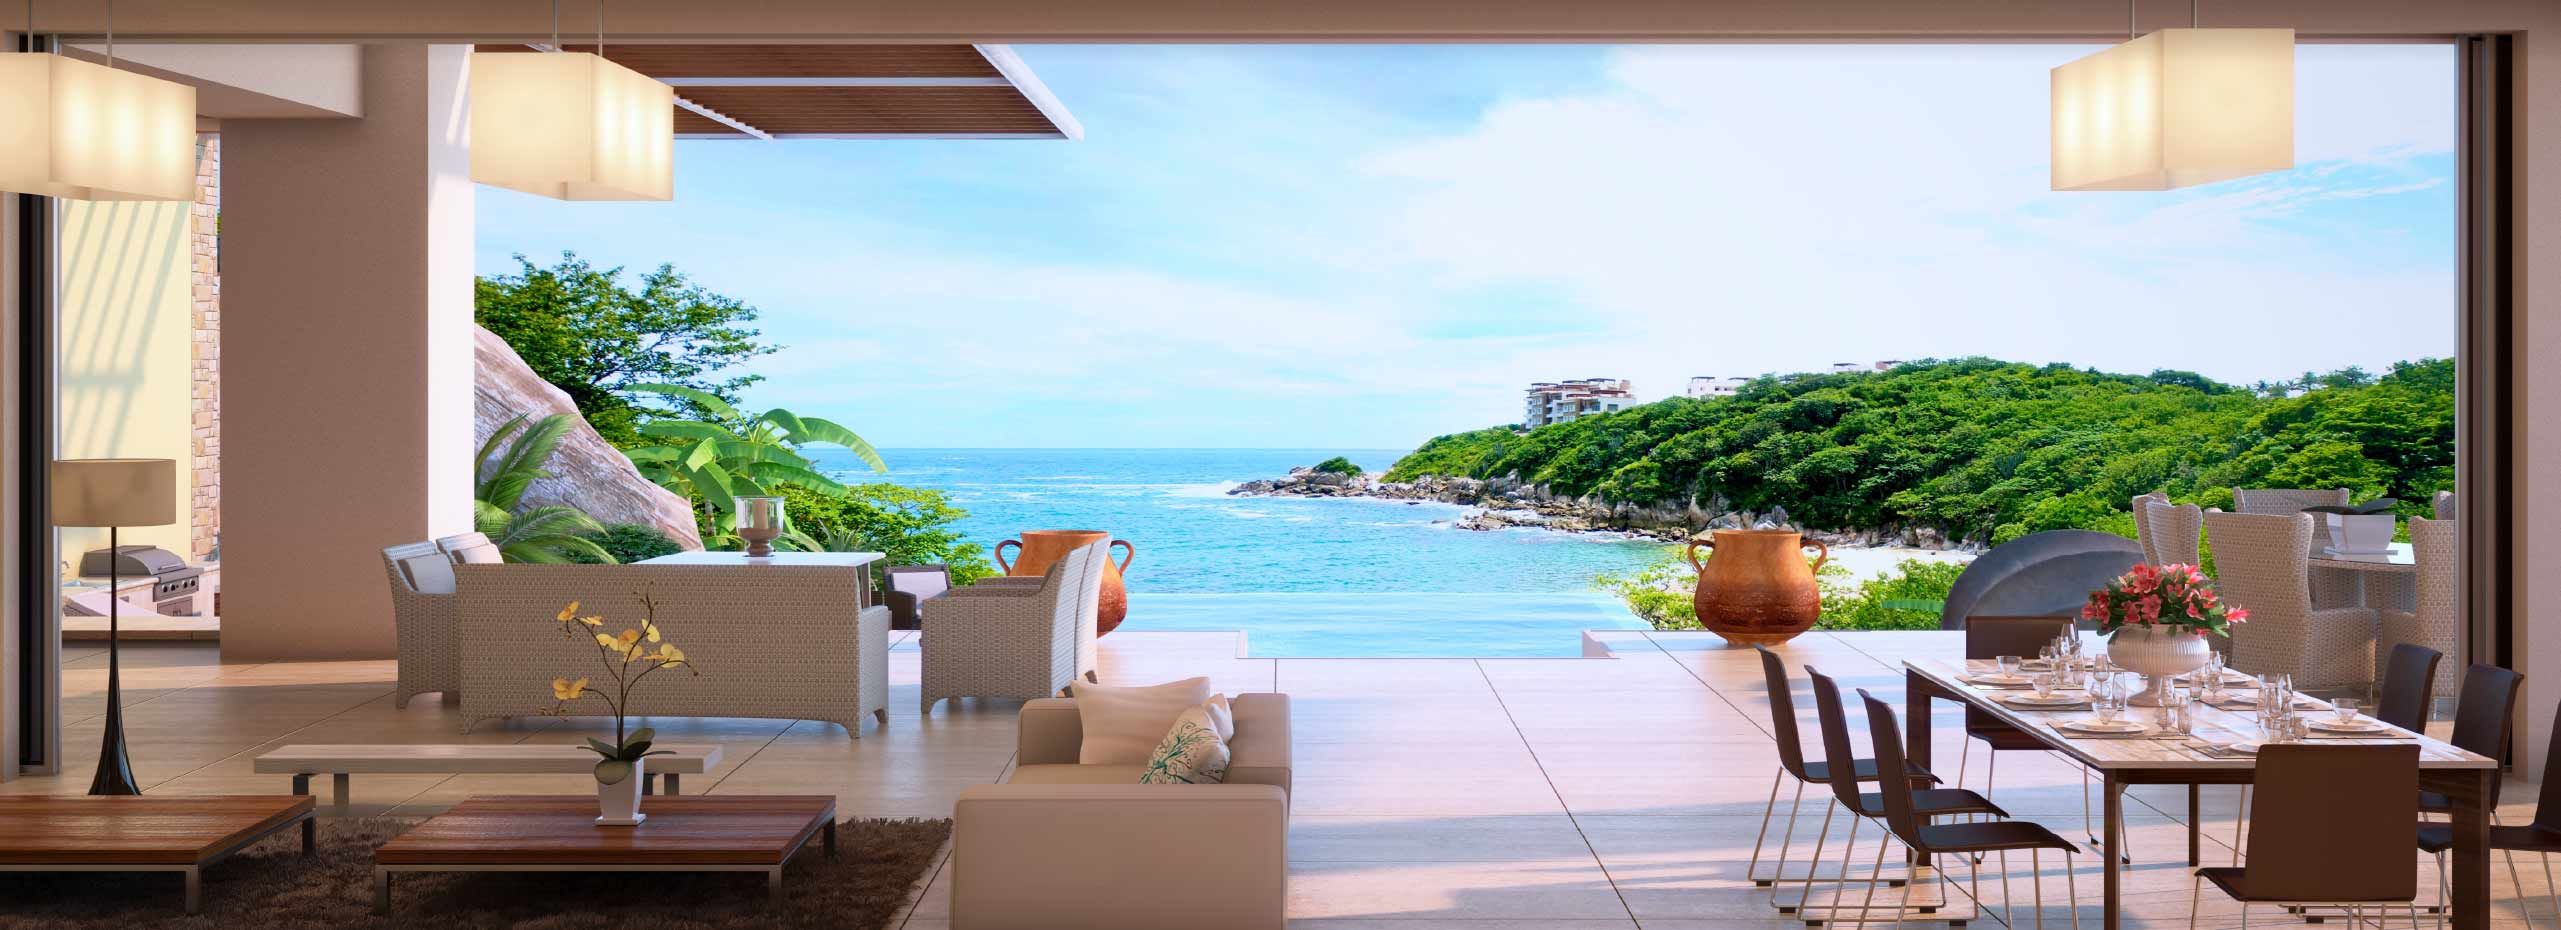 Cosmo residences huatulco unparalleled value in a full for Villas huatulco